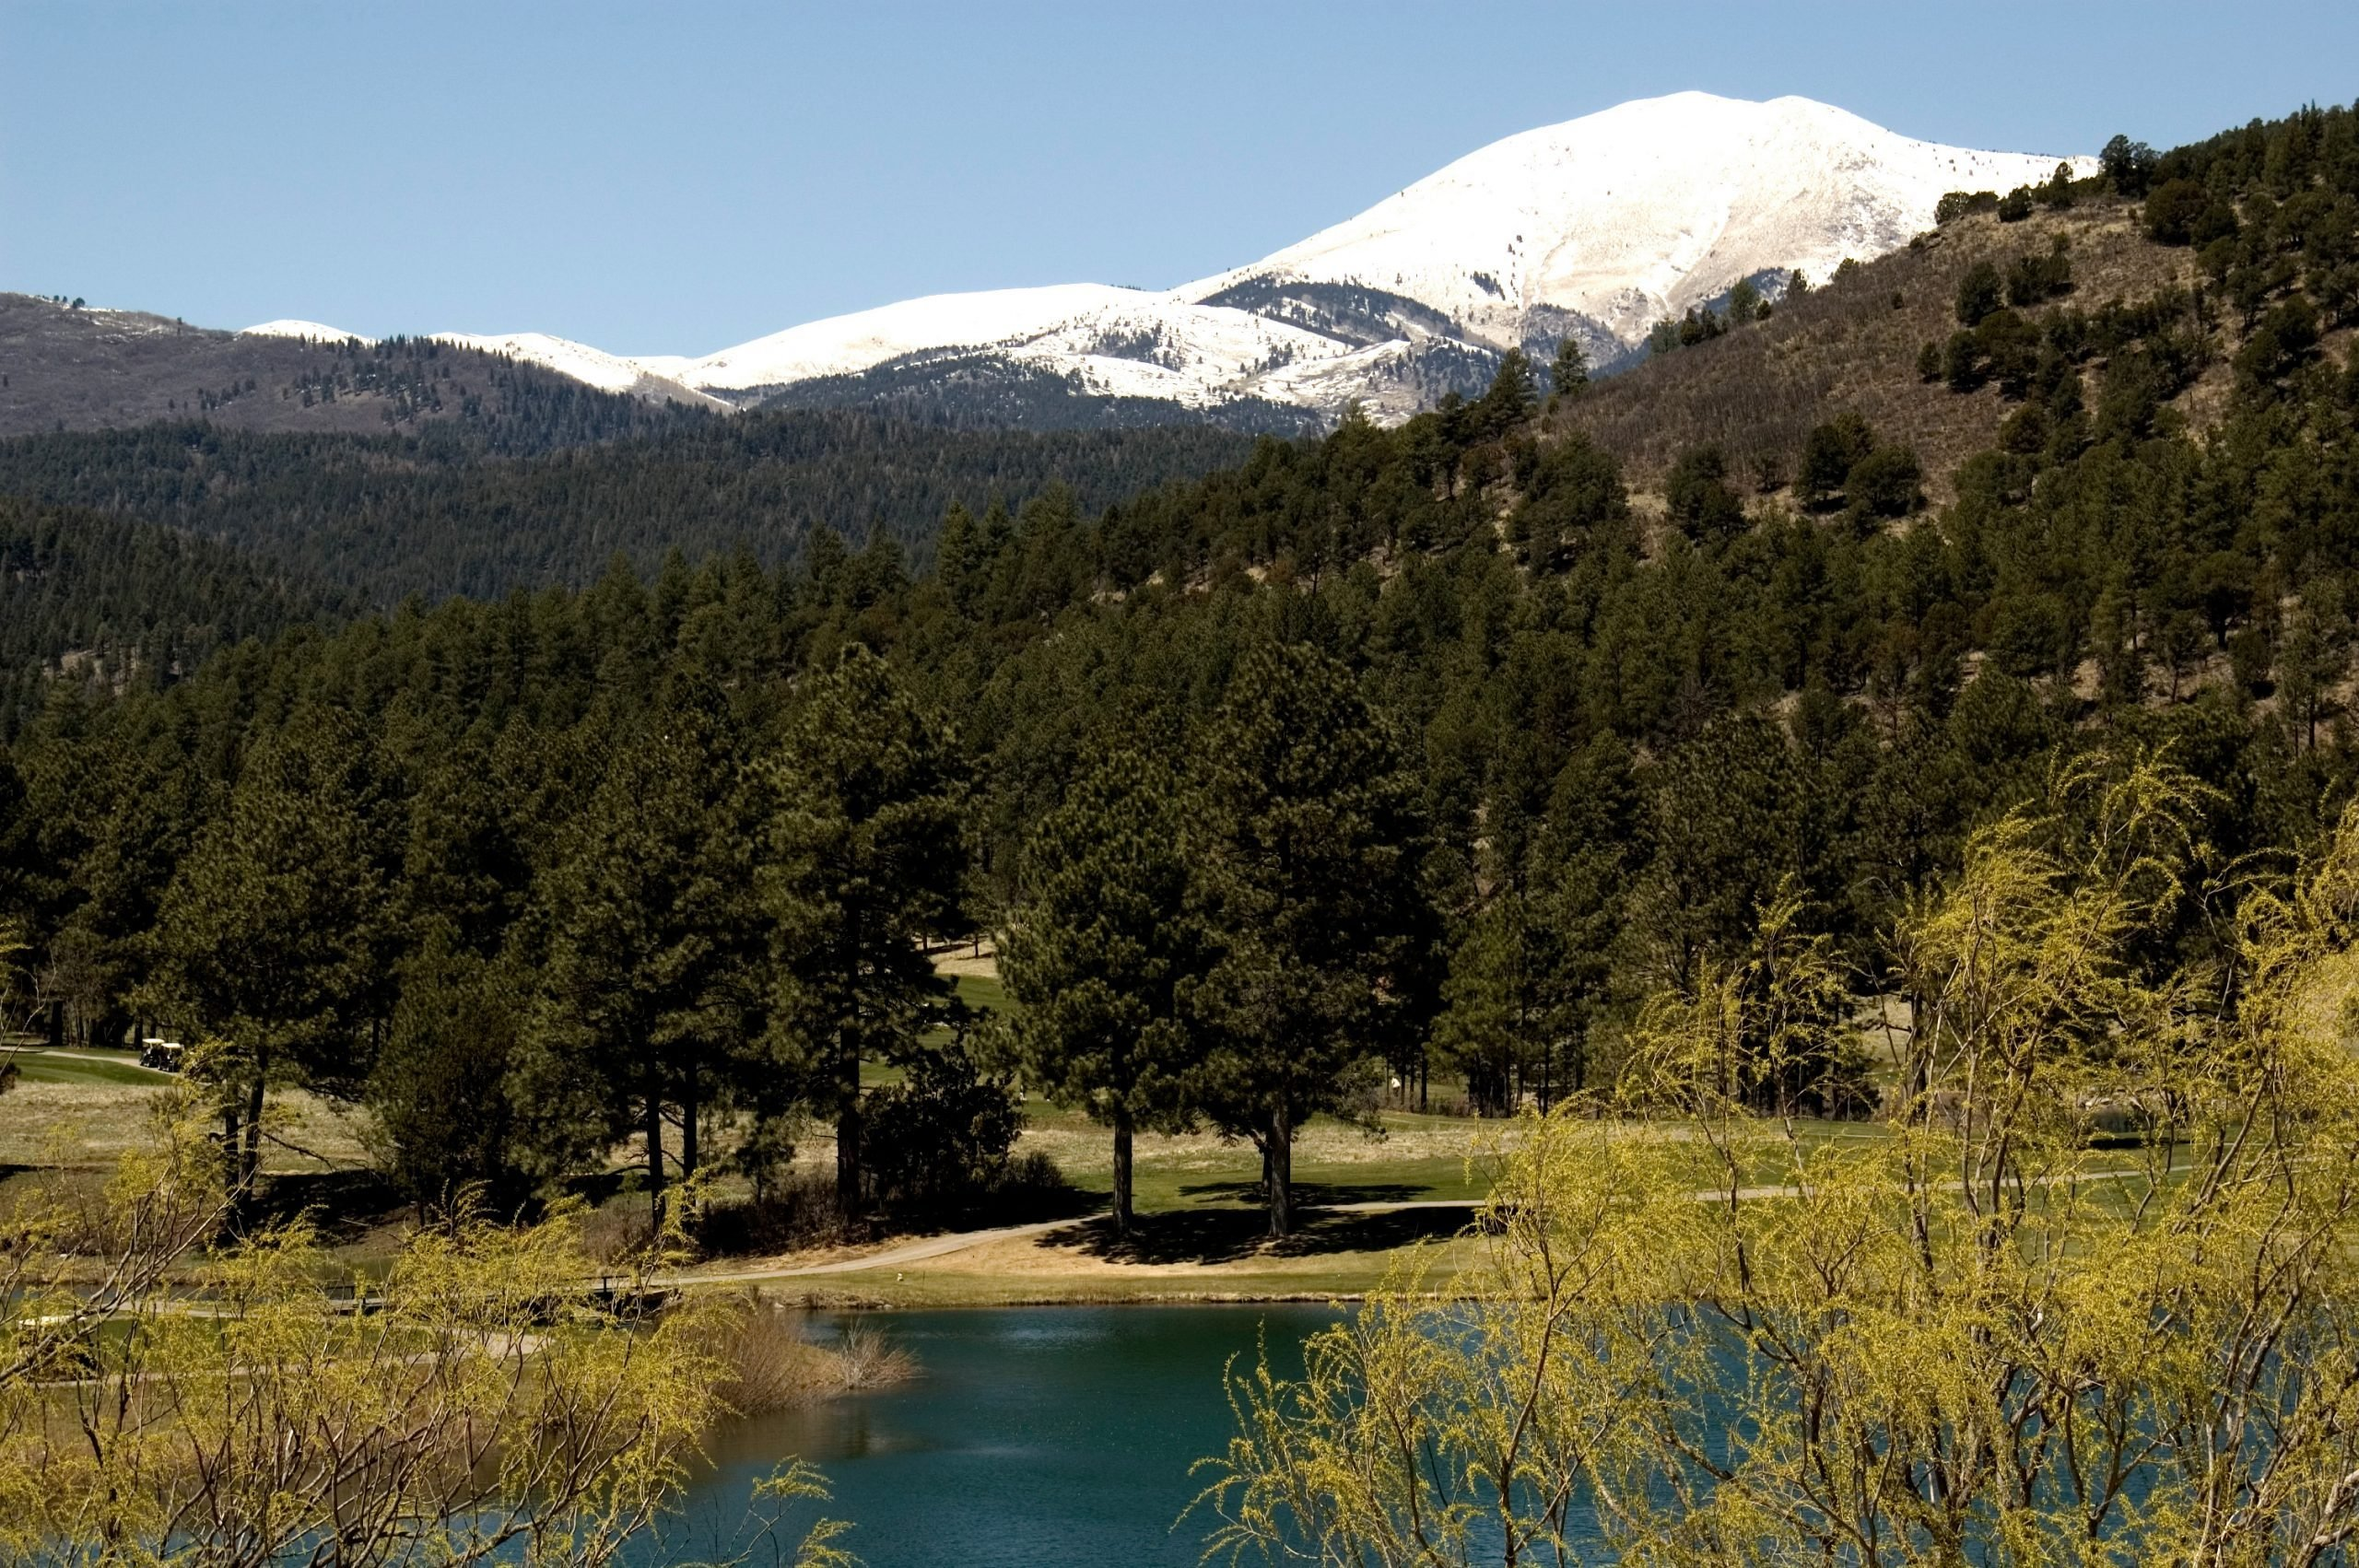 landscape with a lake and mountains; Ruidoso, New Mexico